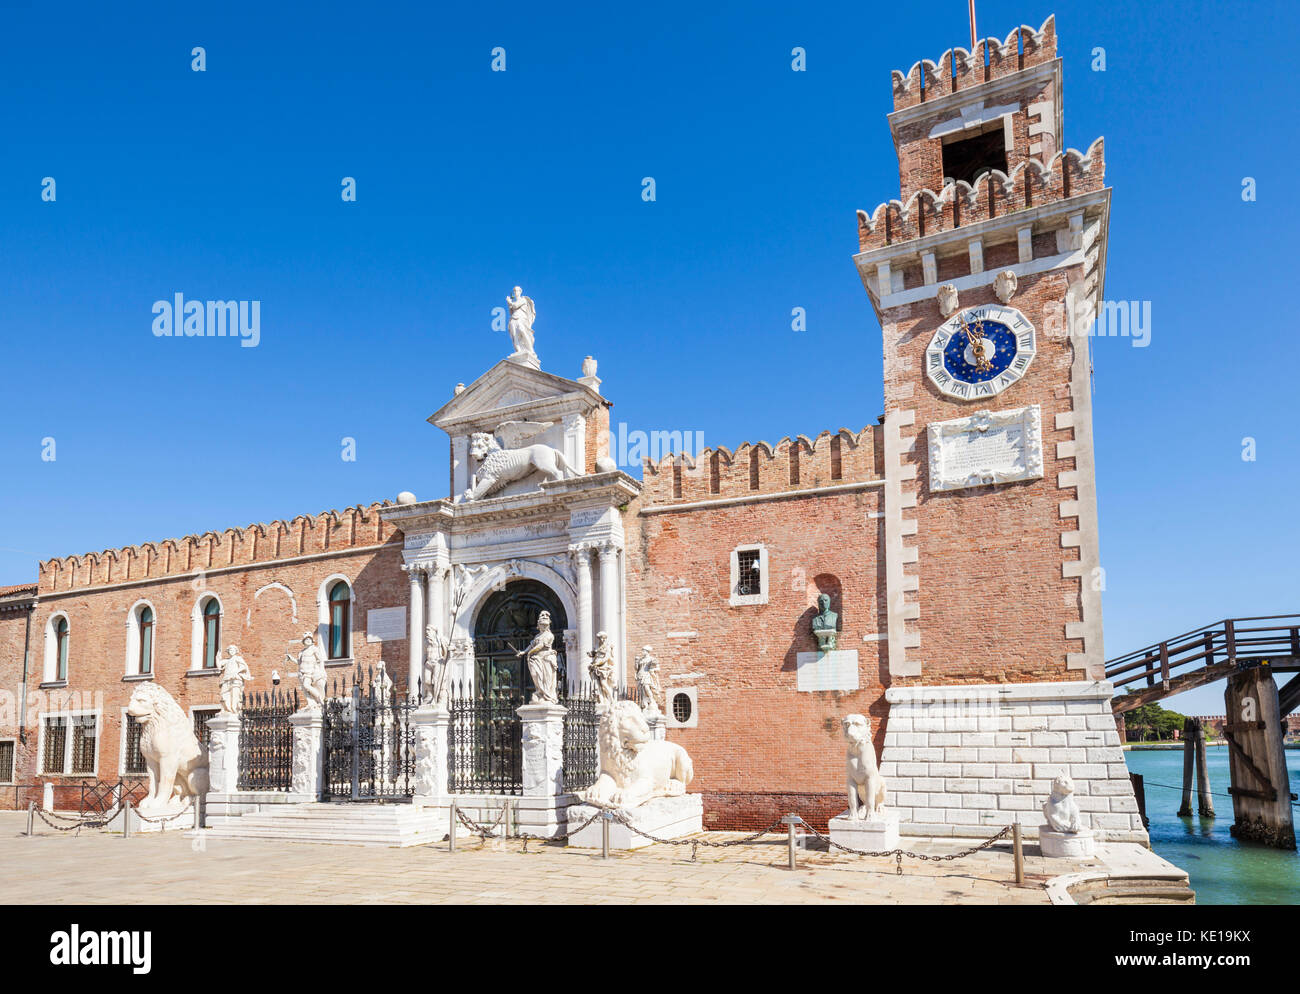 italy Venice italy Venetian Arsenal Arsenale di Venezia Ponte del Purgatorio and The Porta Magna at the Venetian - Stock Image